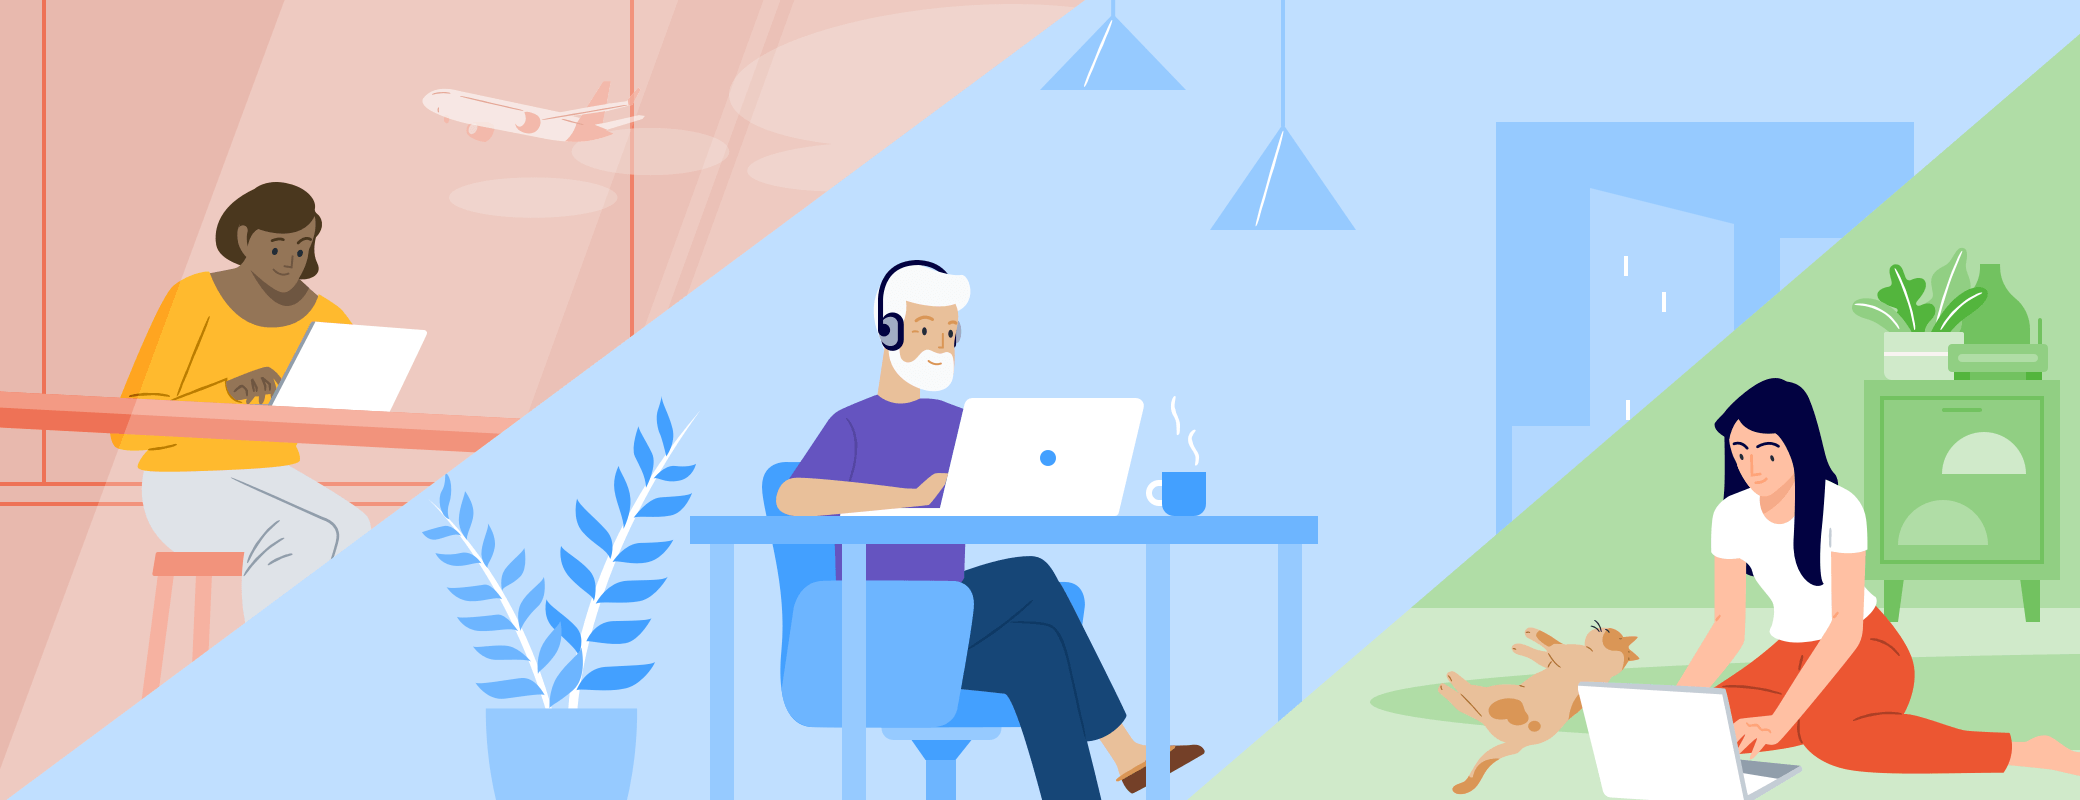 How to make remote work, work: tips from 1Password